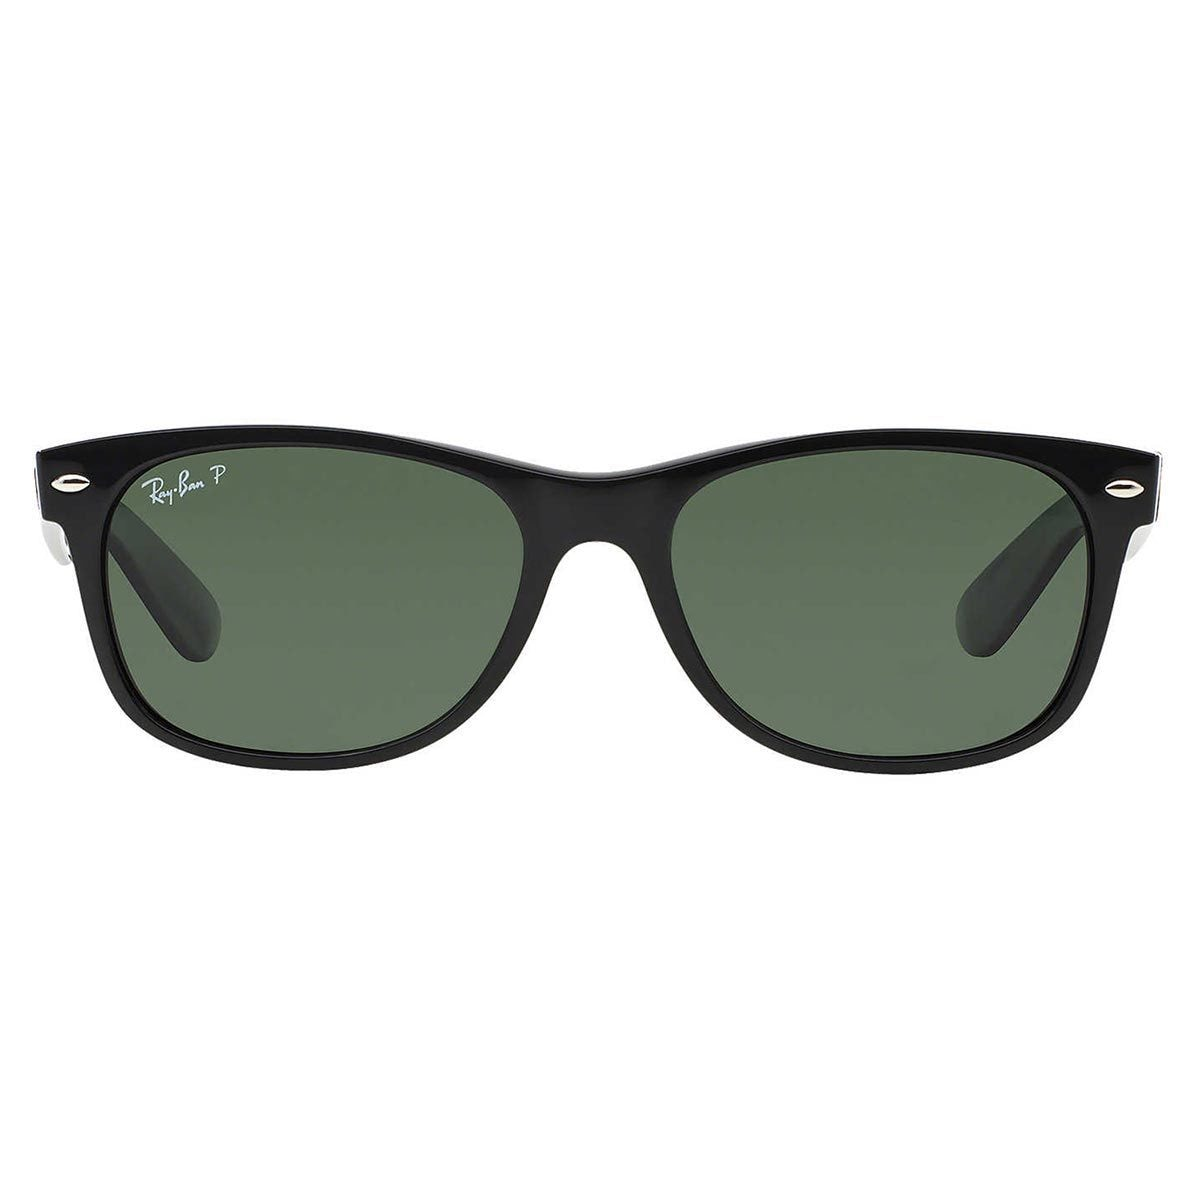 Shop Ray-Ban New Wayfarer RB2132 Polarized Sunglasses - Black - Free  Shipping Today - Overstock.com - 5329325